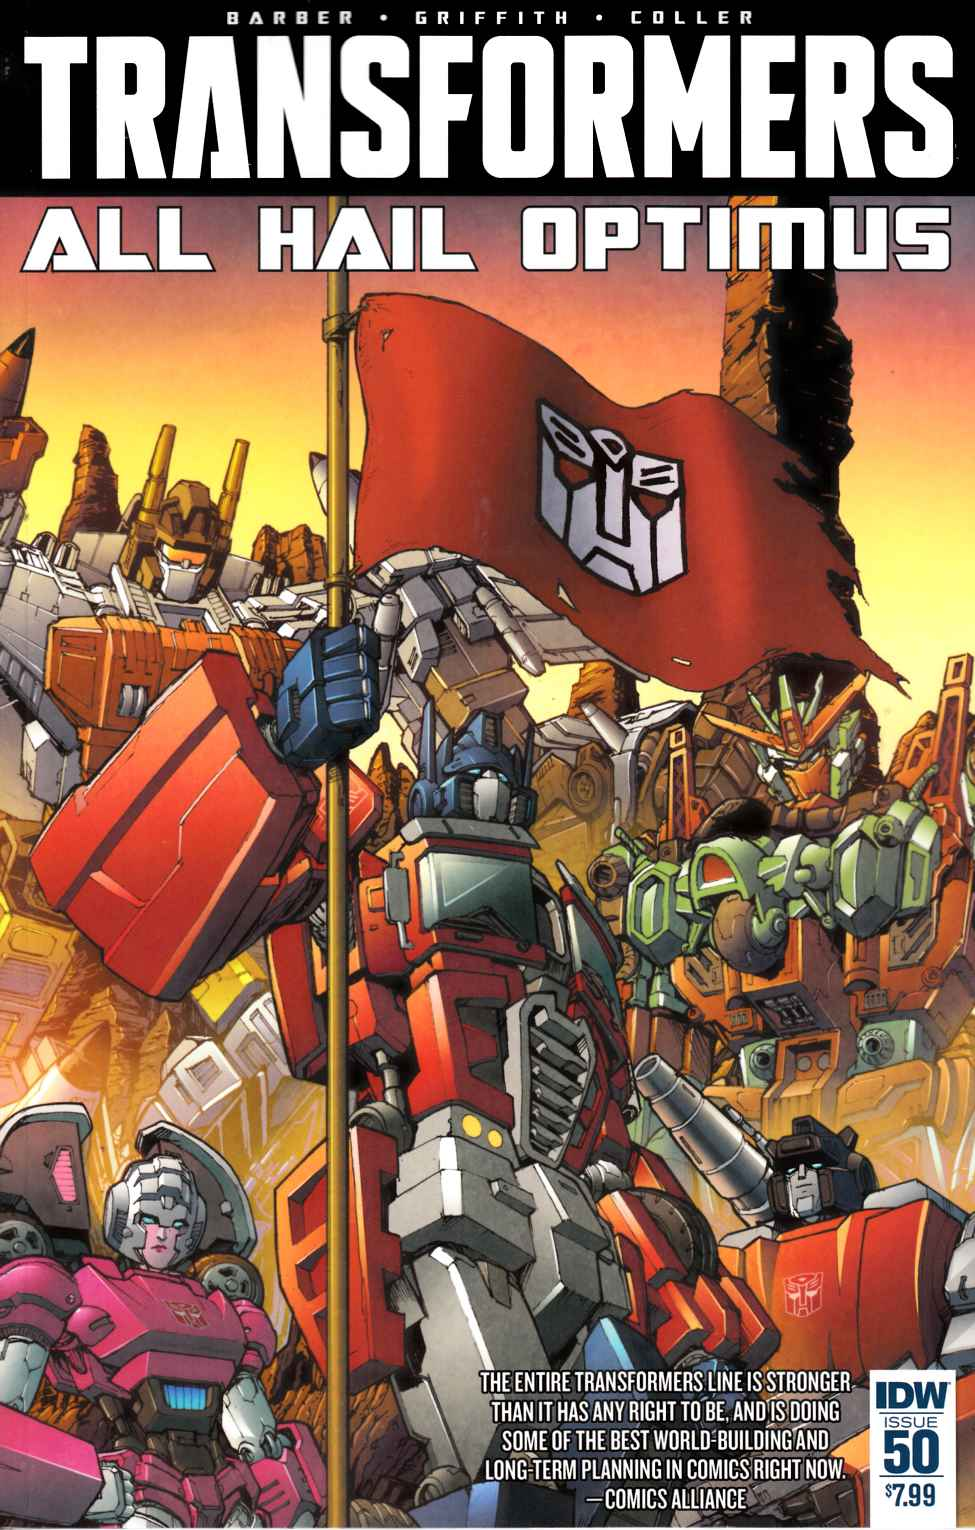 Transformers #50 Cover A [IDW Comic] THUMBNAIL